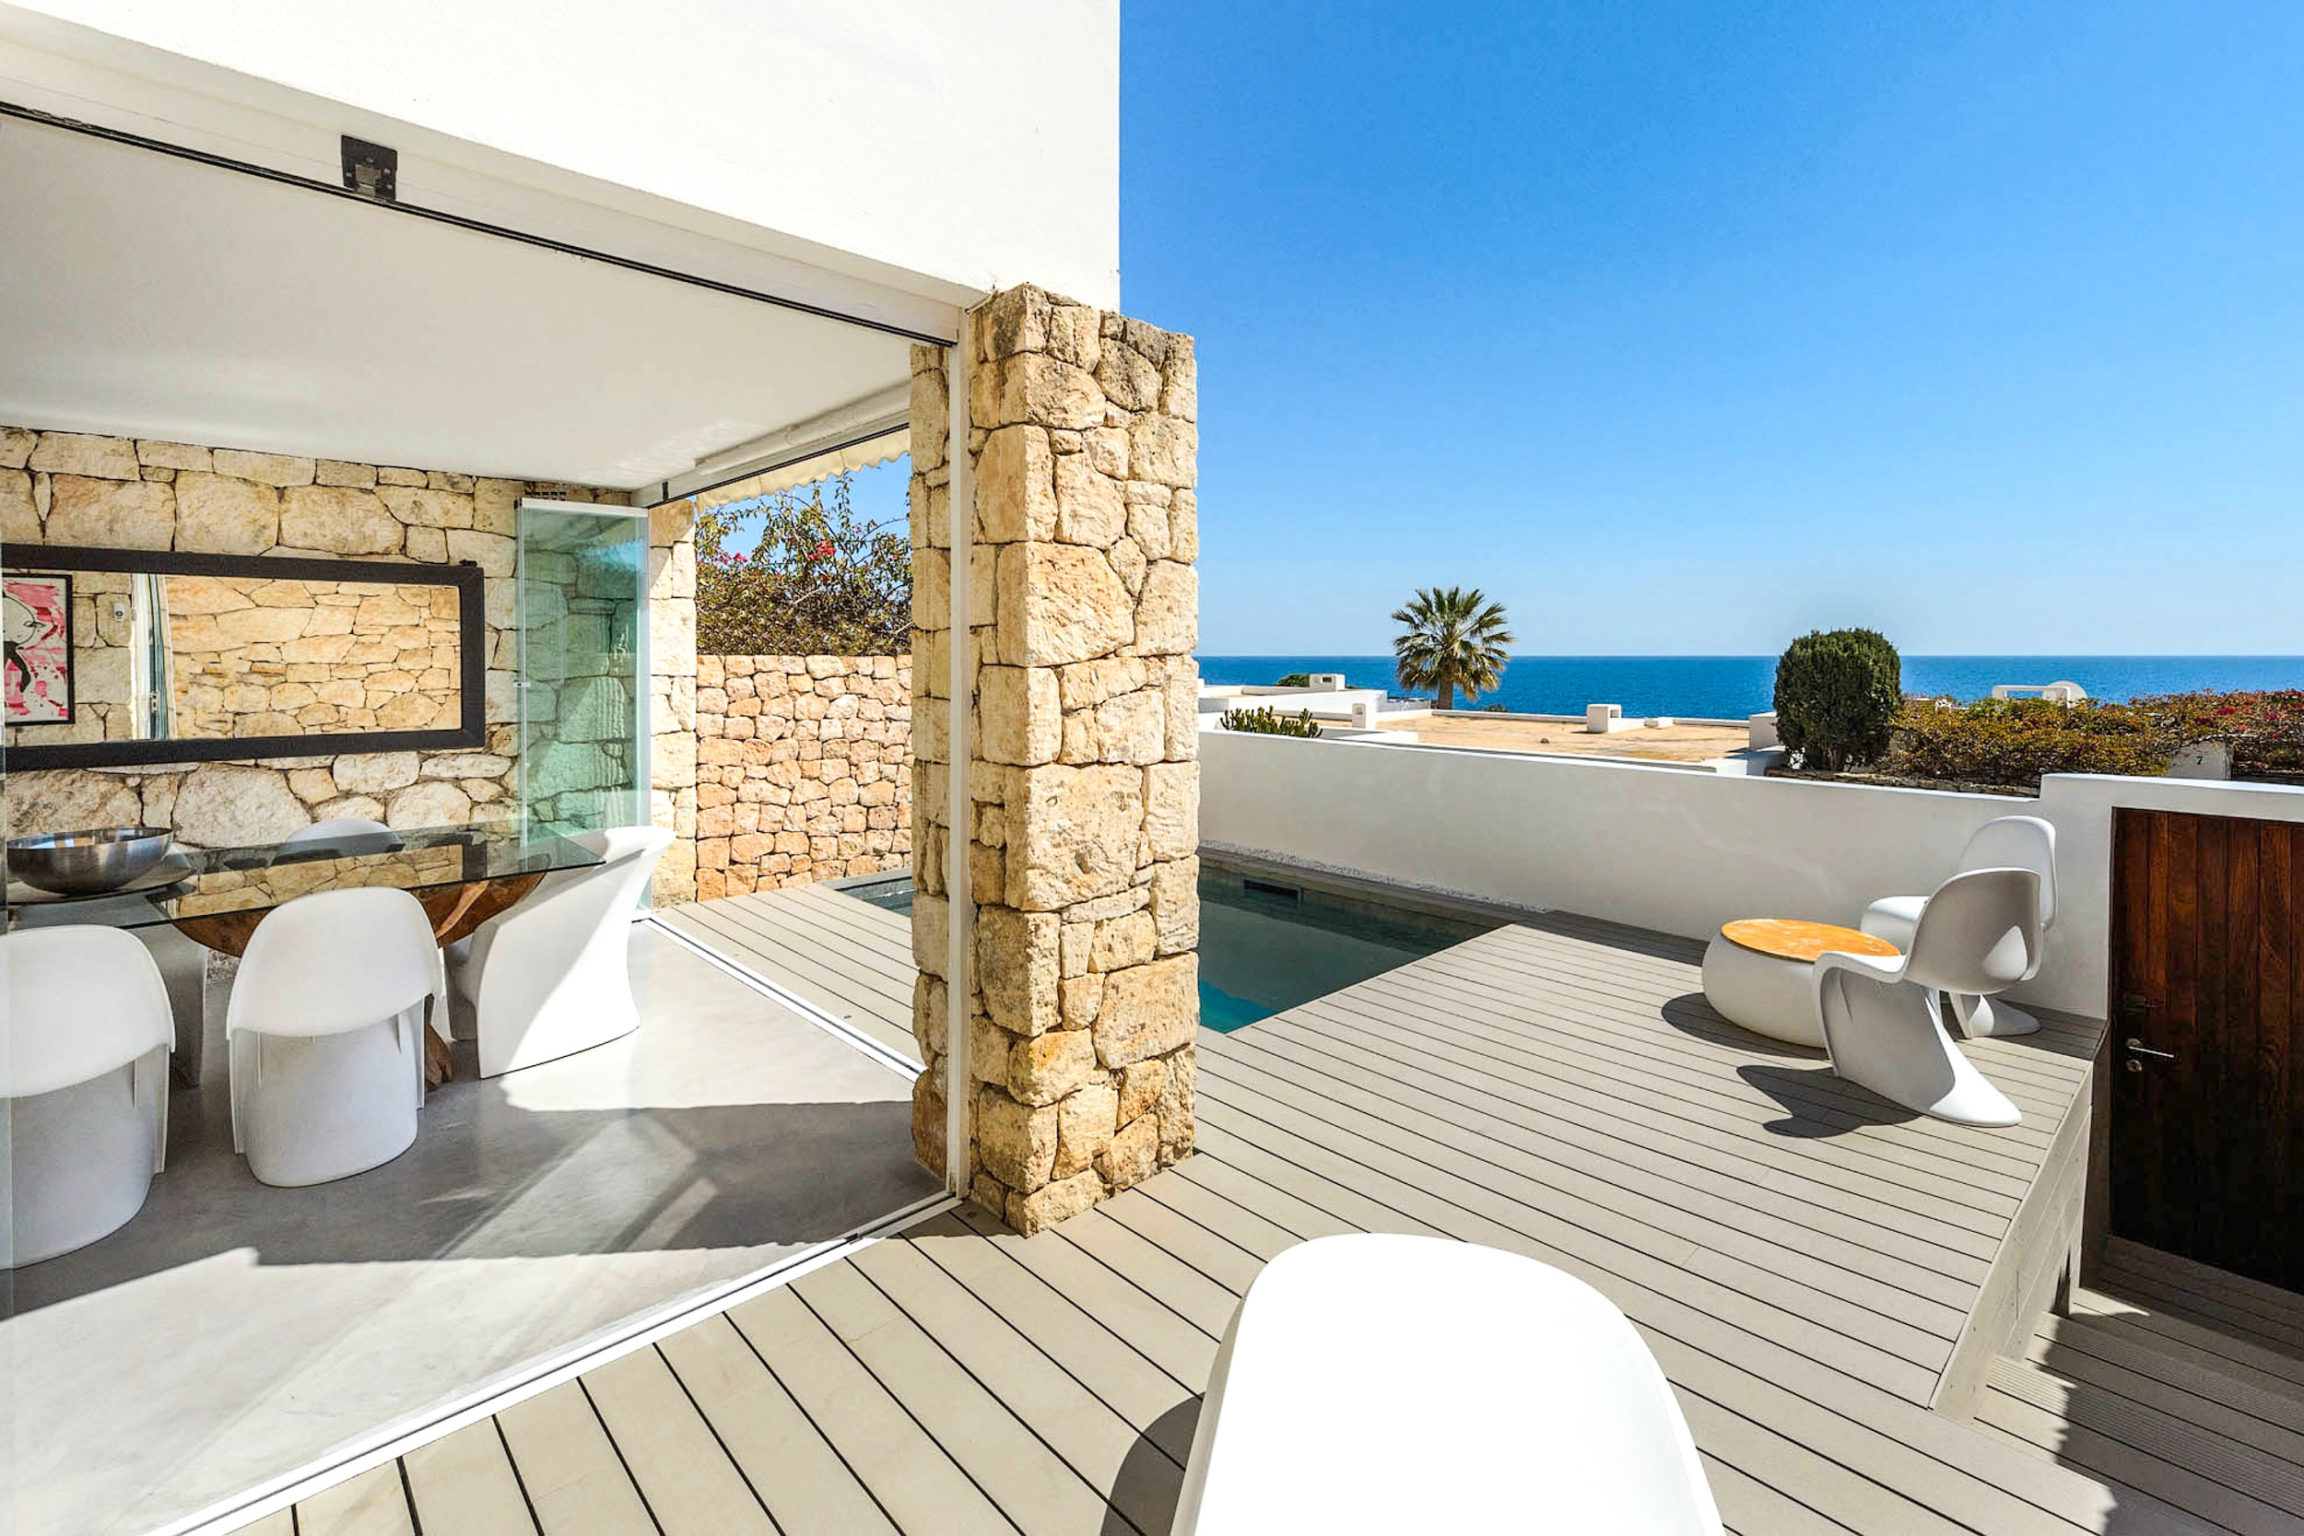 https://www.white-ibiza.com/wp-content/uploads/2020/03/white-ibiza-property-WI181-2020-03-2304x1536.jpg